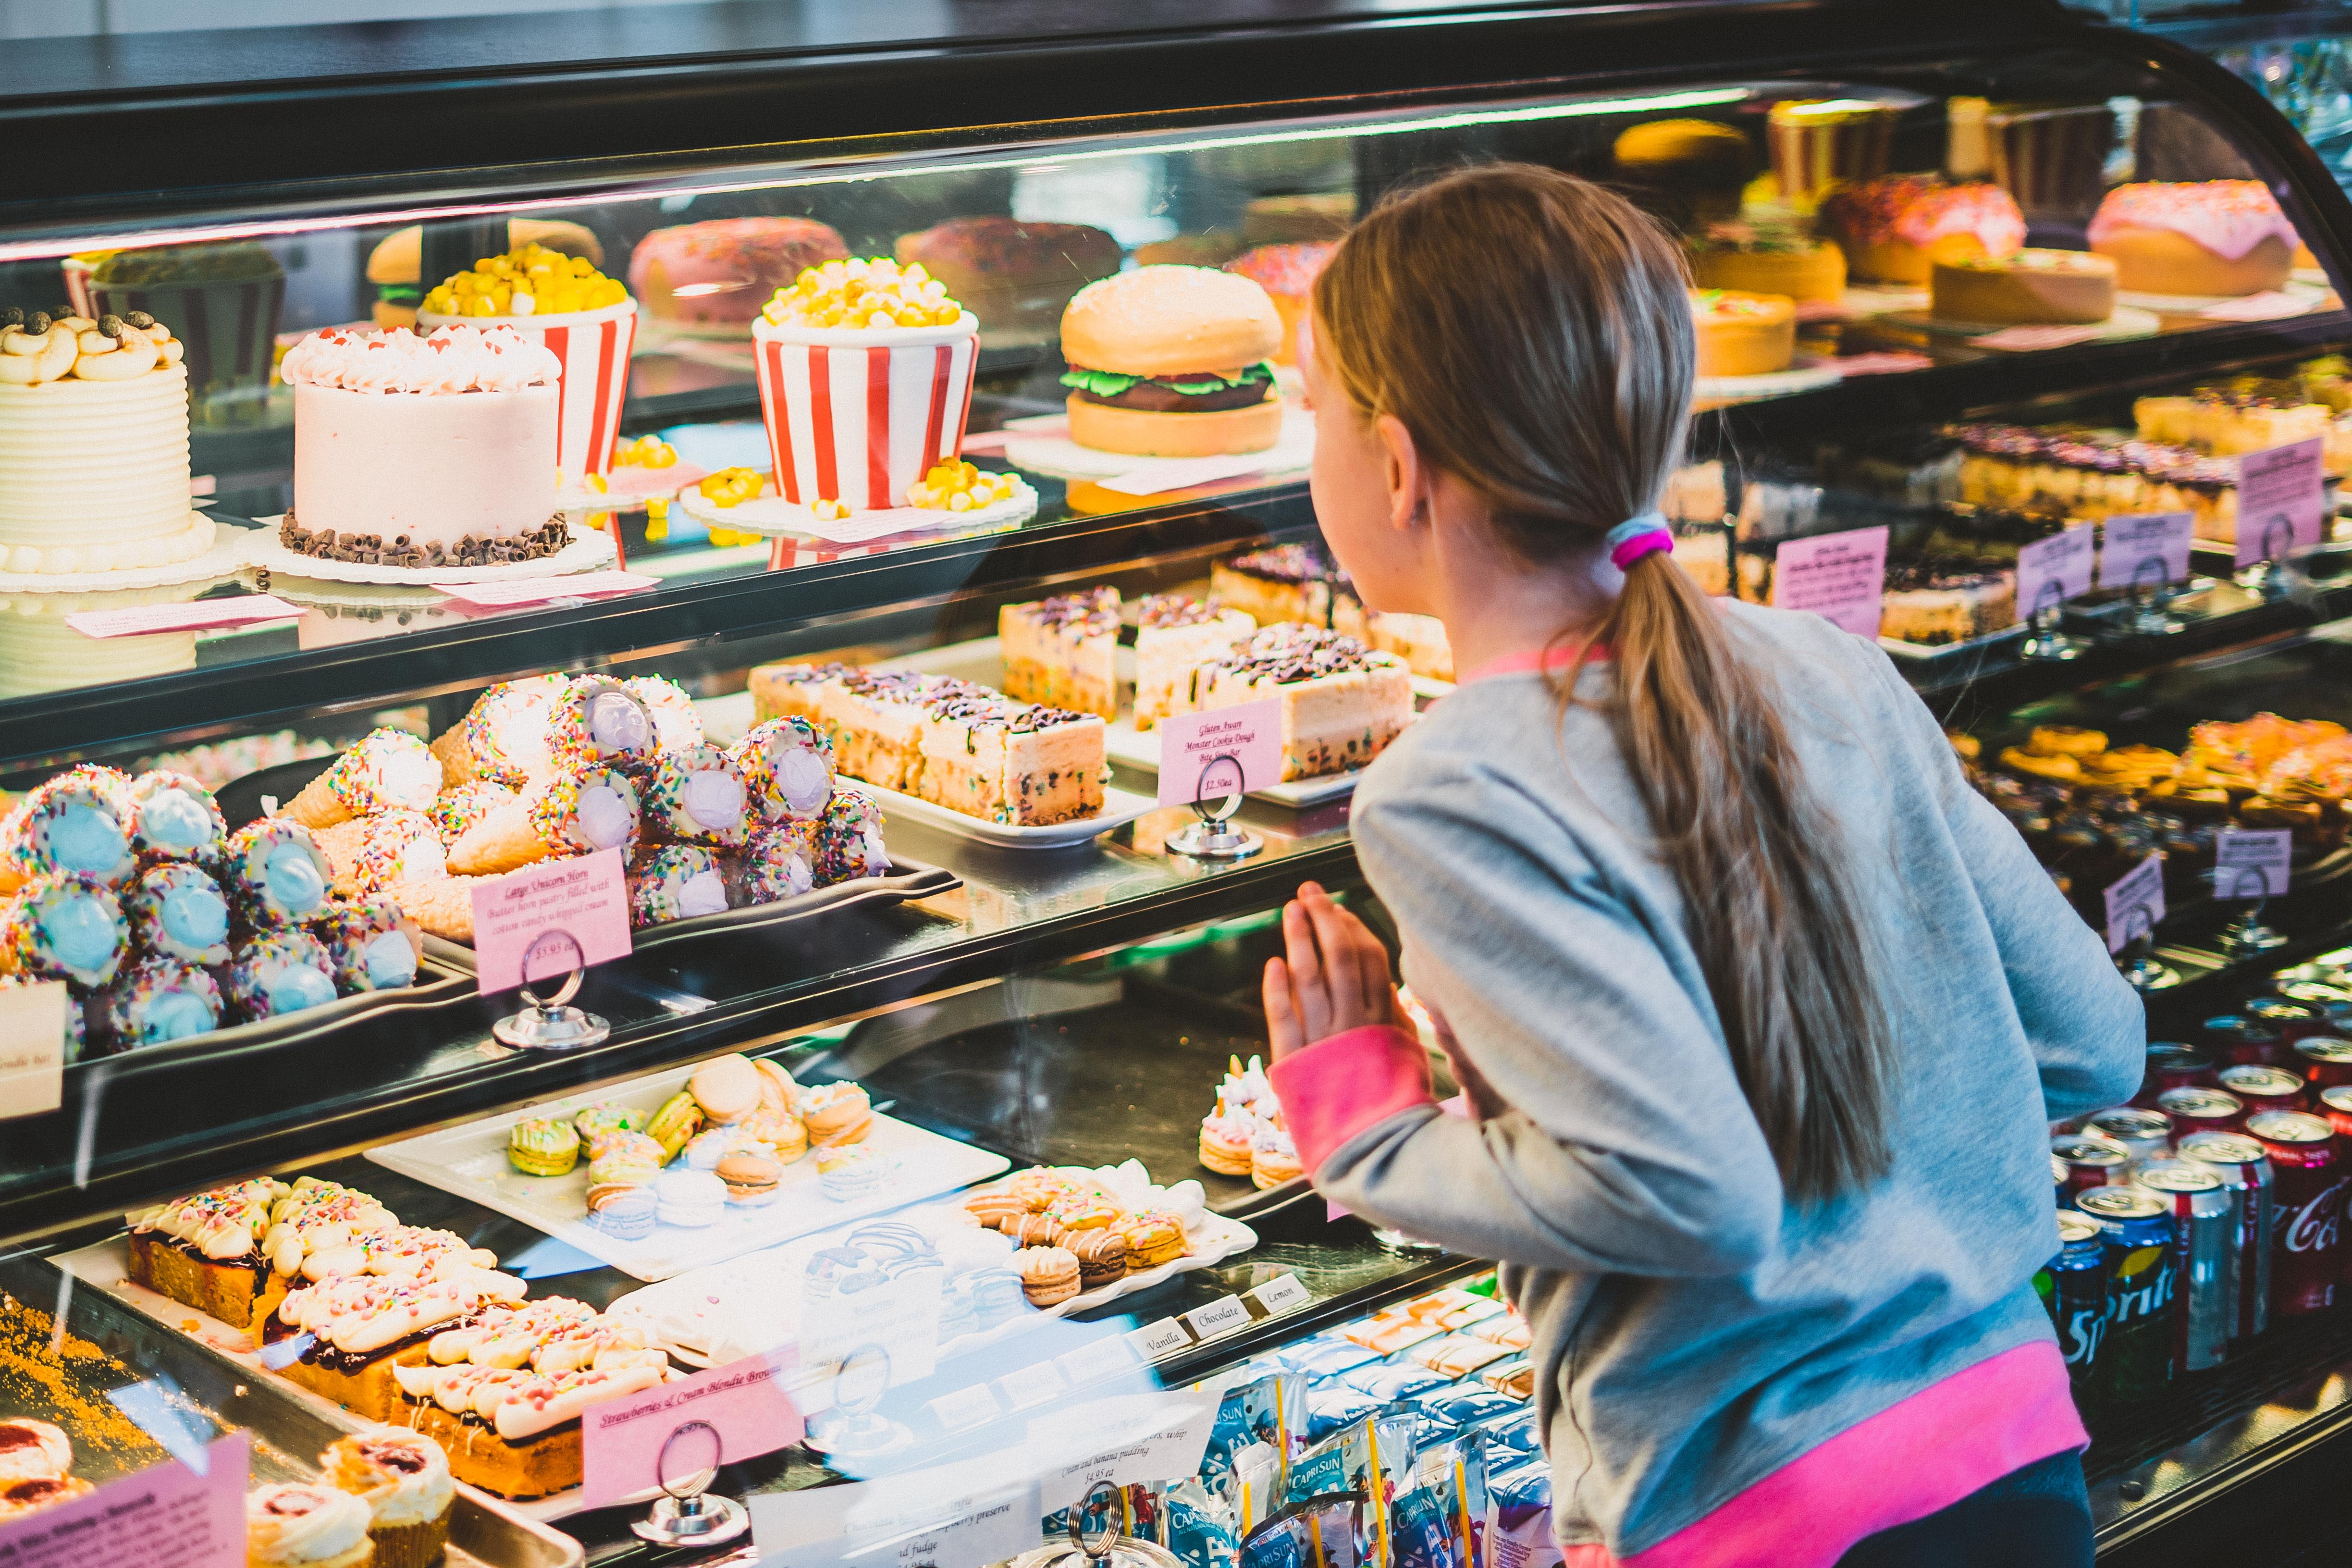 Little girl looking at desserts